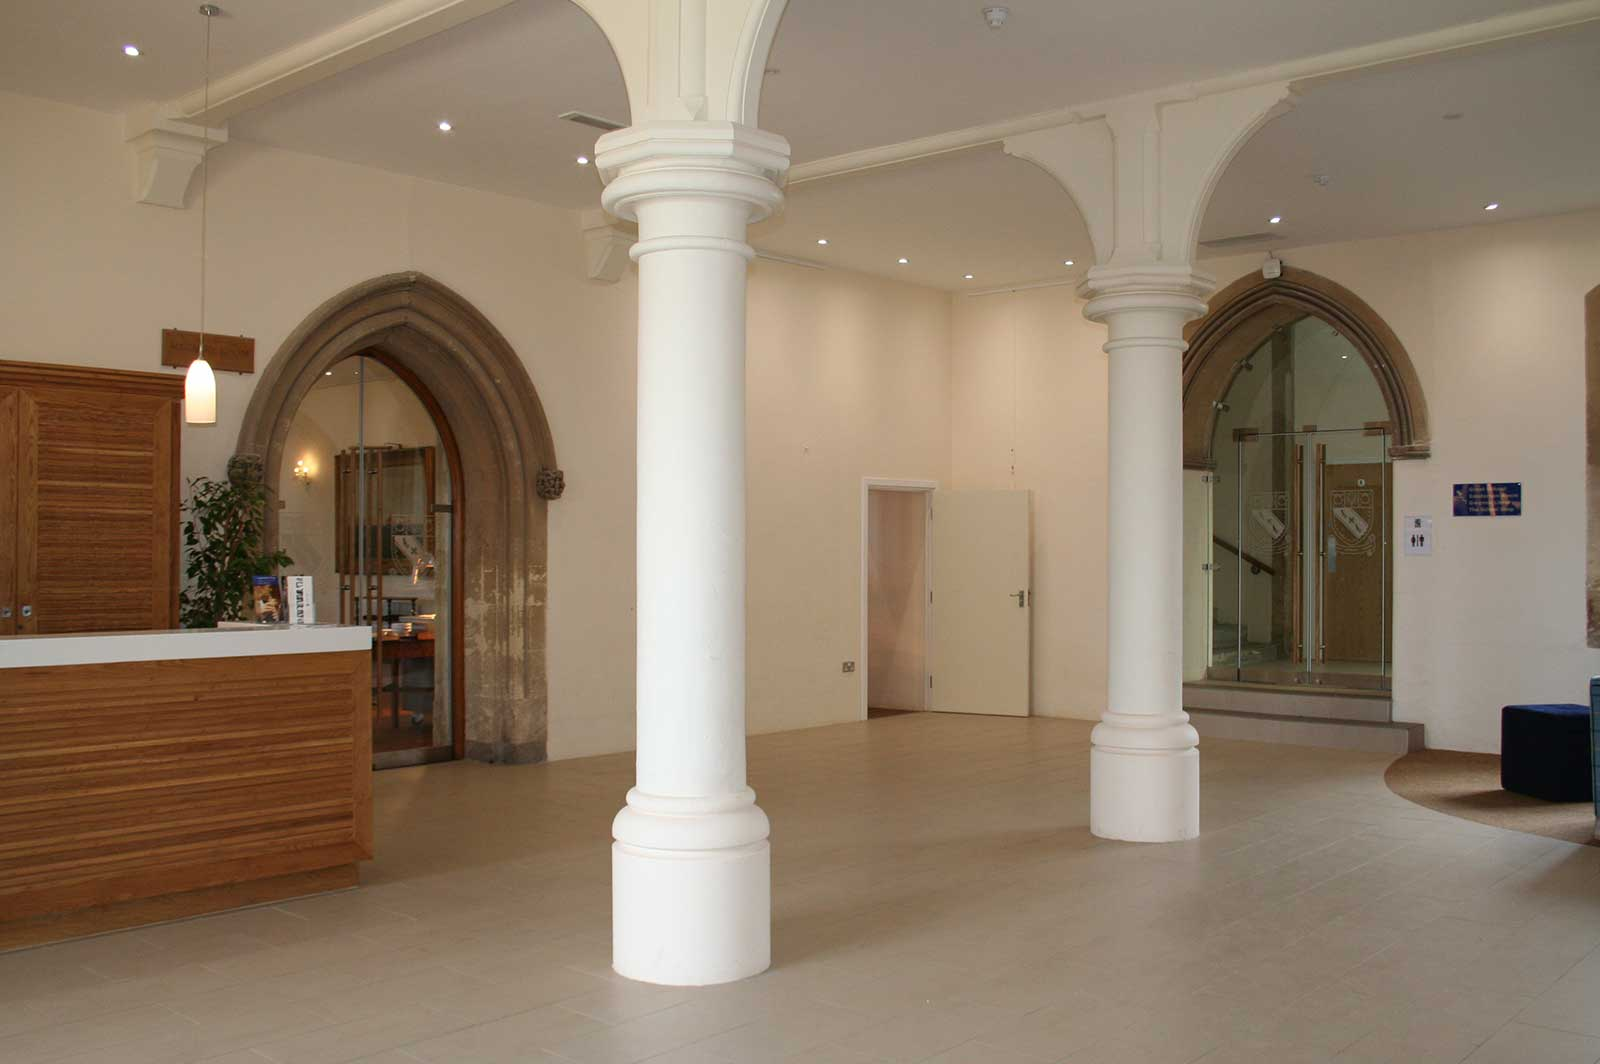 Double Glass Doors to Suit Archways, Lancing College